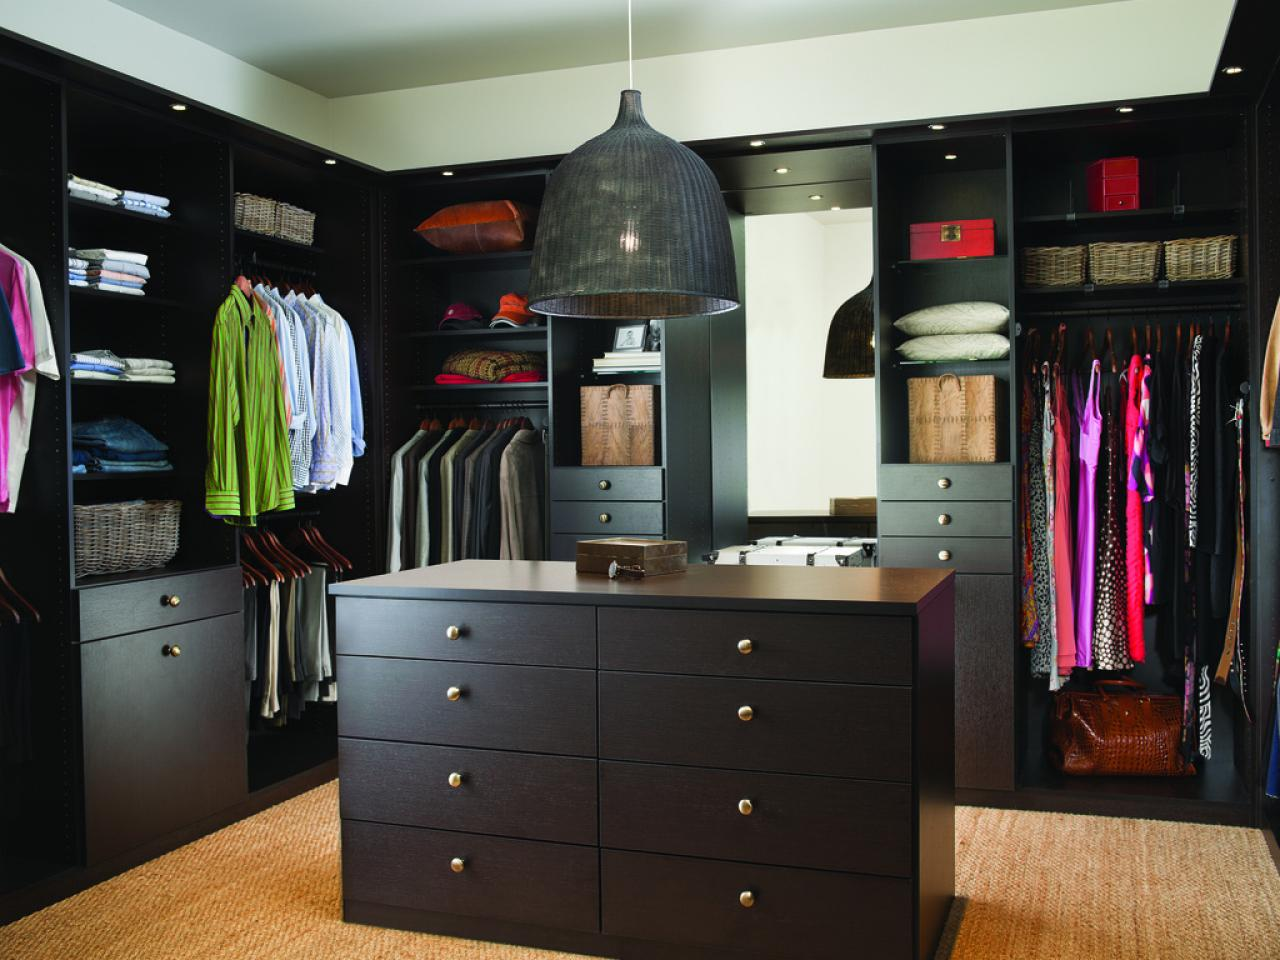 bedroom closet design ideas closet ideas for small bedrooms home ornate details bedroom closet designs